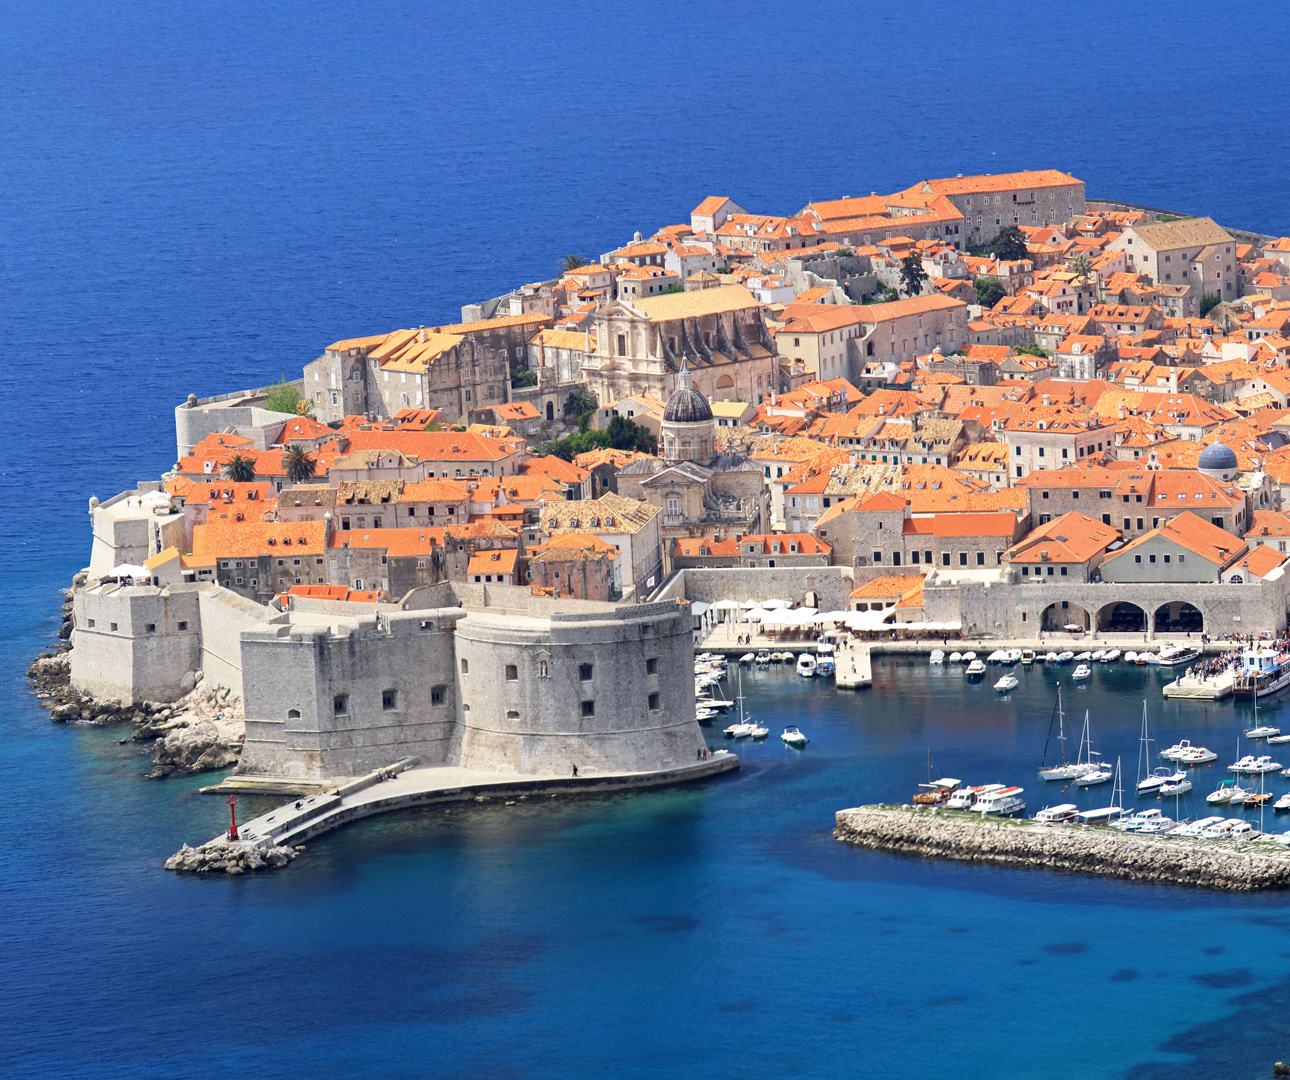 Cruising along the Coastlines of Croatia with Insight Vacations